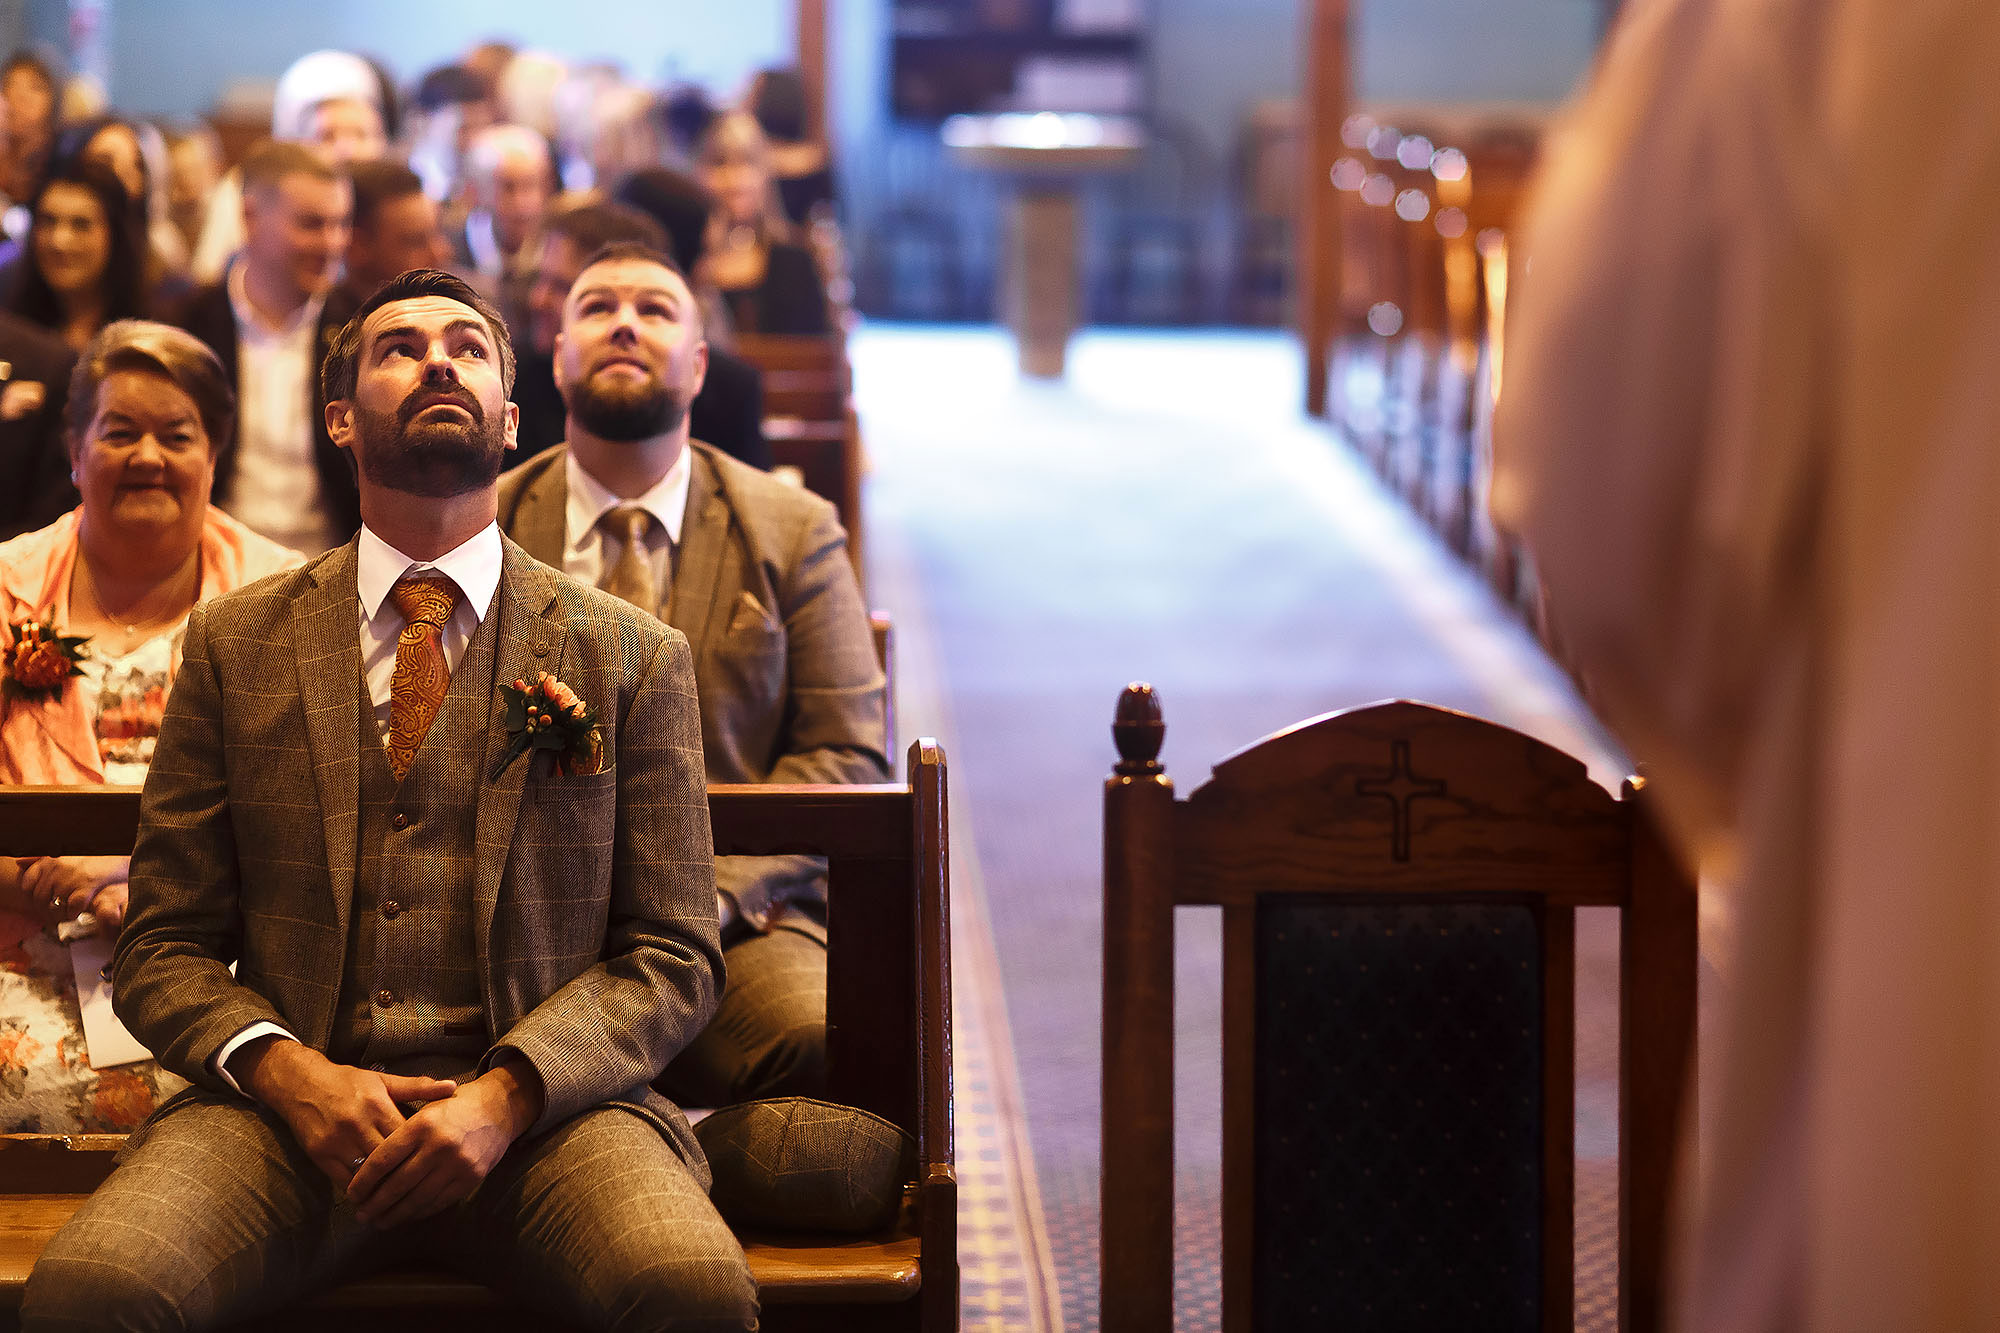 Groom looking nervously upwards as the church is full waiting for the bride to walk down the aisle at St James the Less Rawtenstall | Wellbeing Farm wedding photographs by Toni Darcy Photography